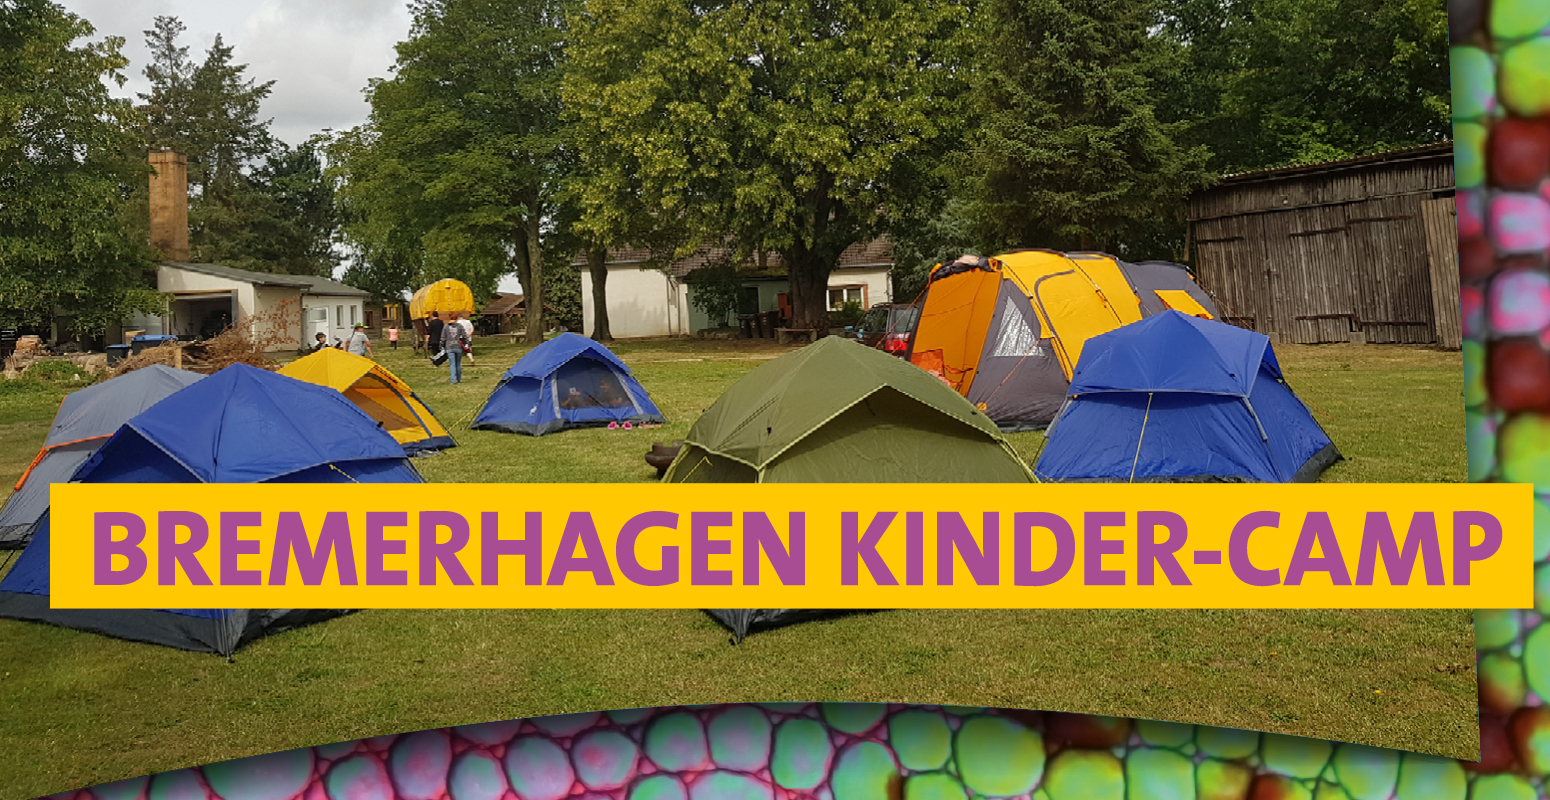 Kinder-Camp in Bremerhagen